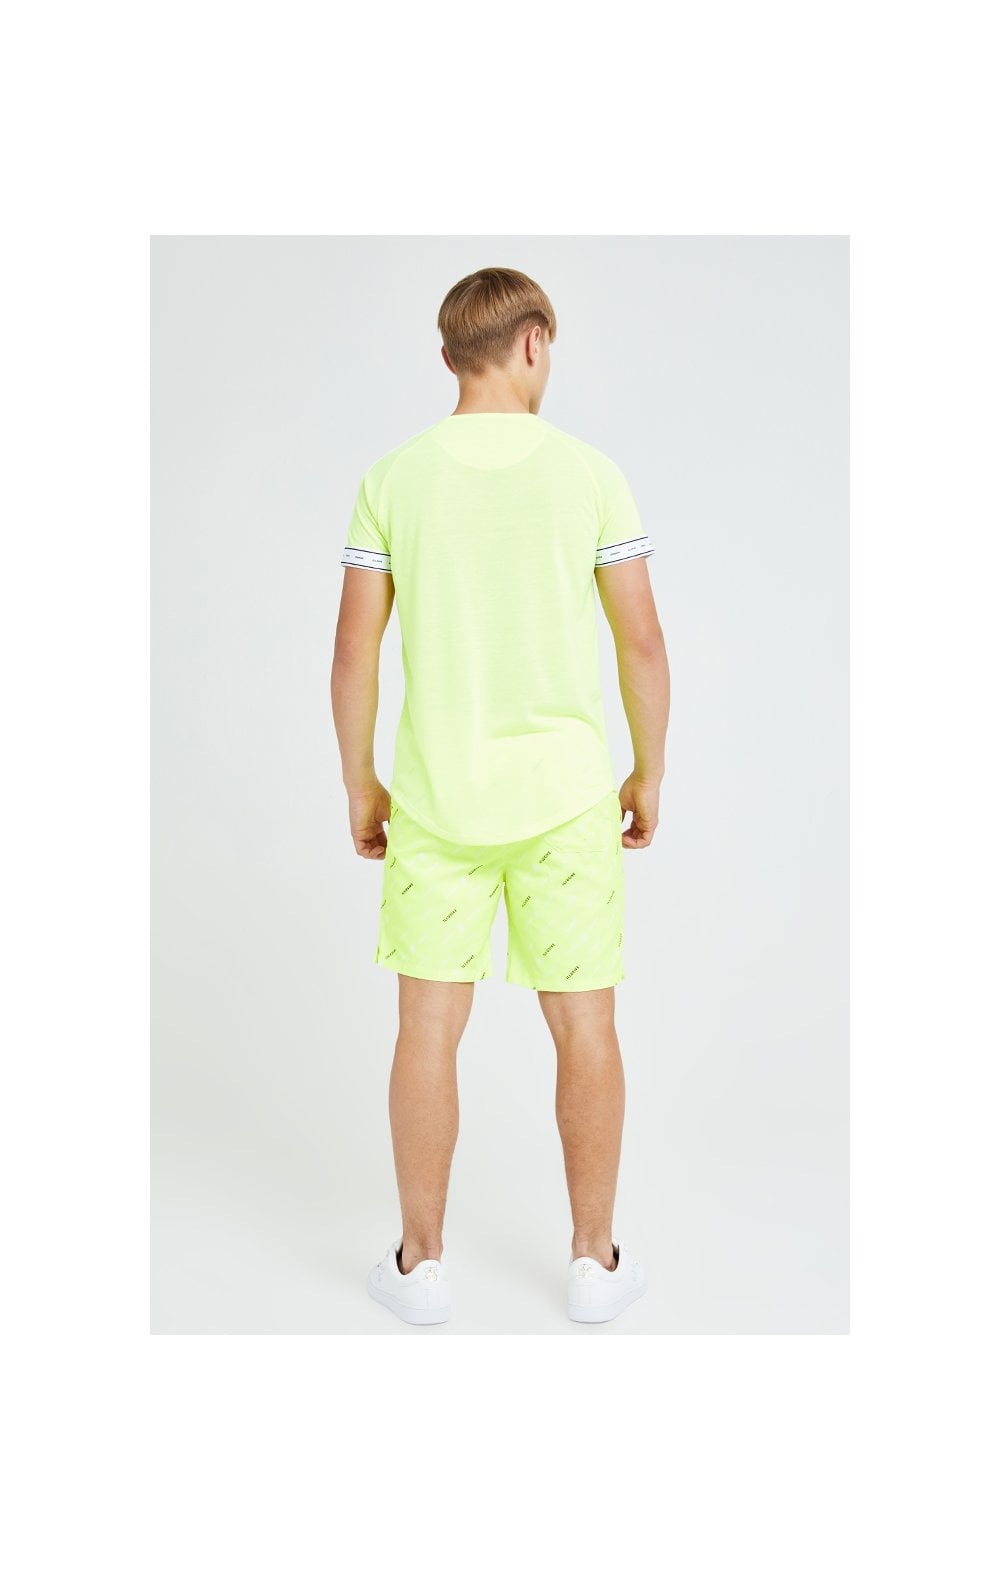 Illusive London Fade Panel Tech Tee - Neon Yellow (5)